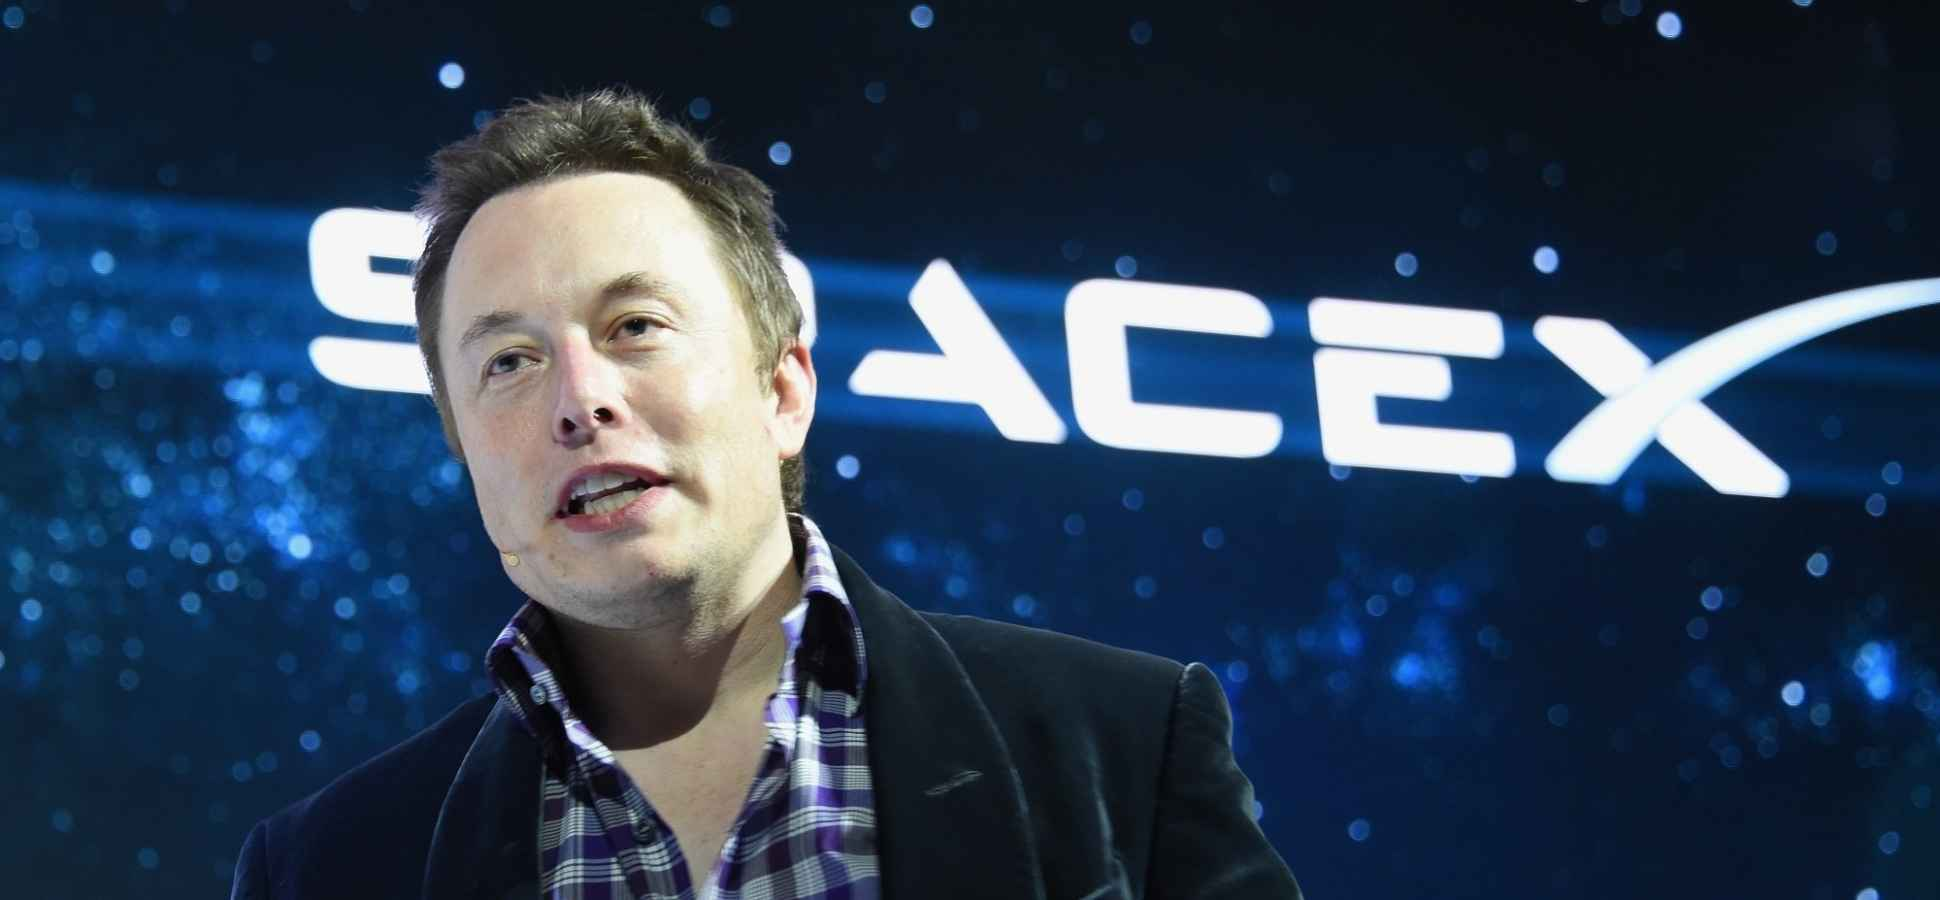 With a Single Tweet, Elon Musk Just Gave a Master Class in Effective Leadership